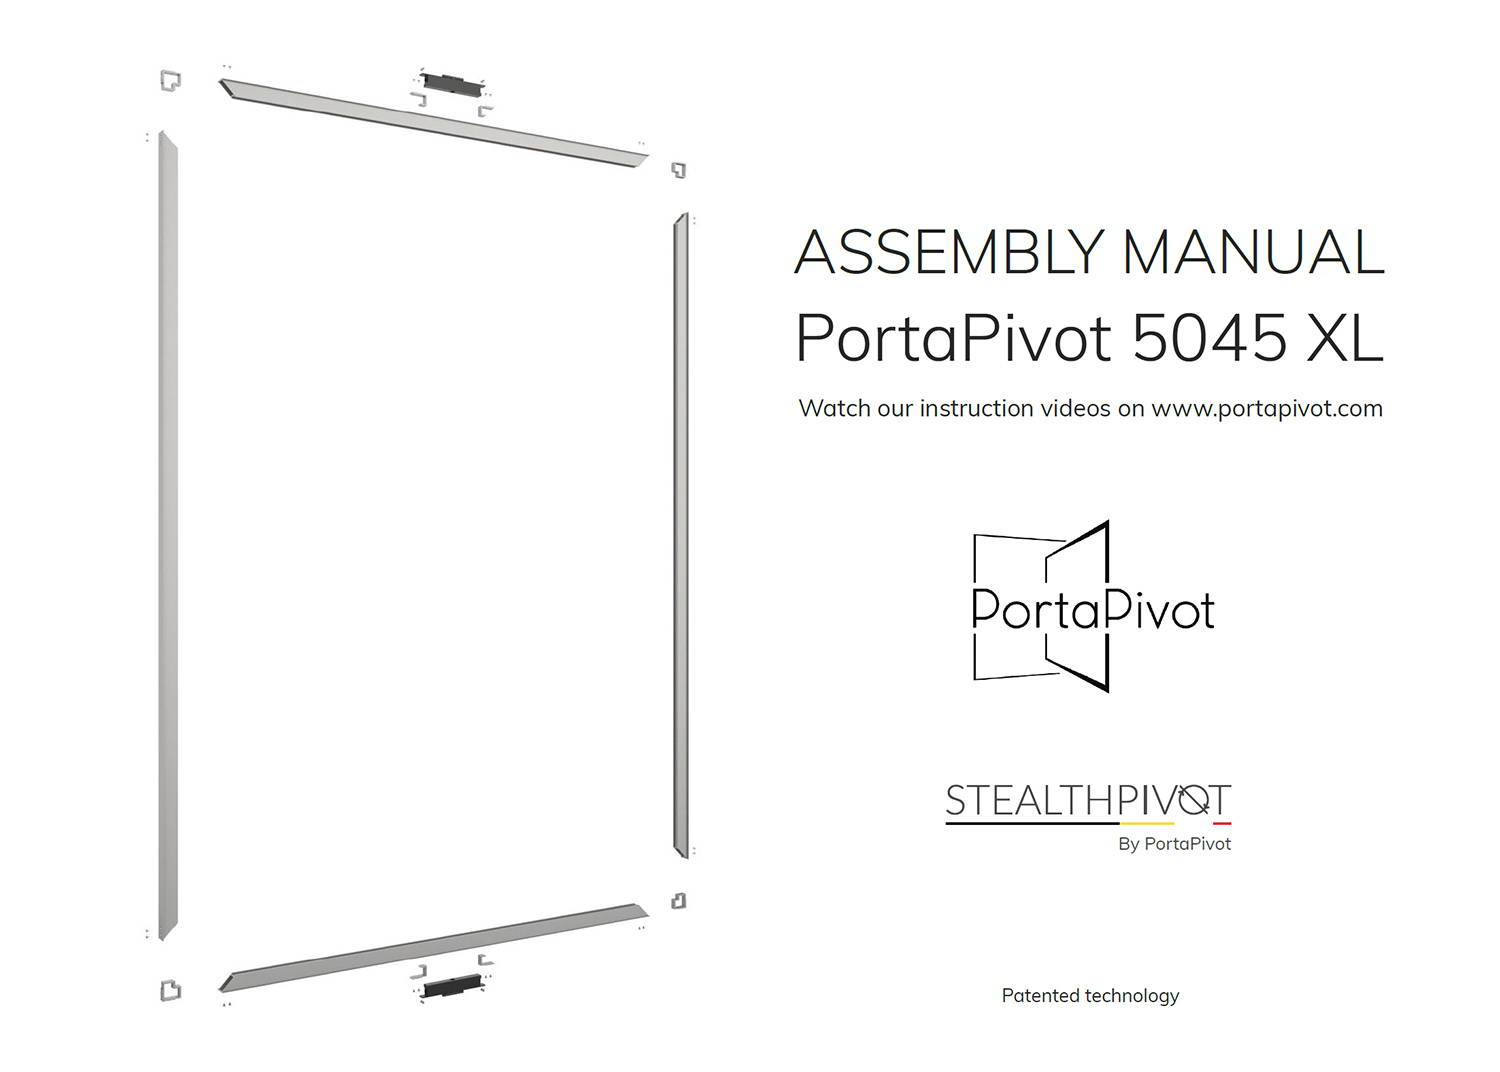 portapivot 5045 XL assembly manual